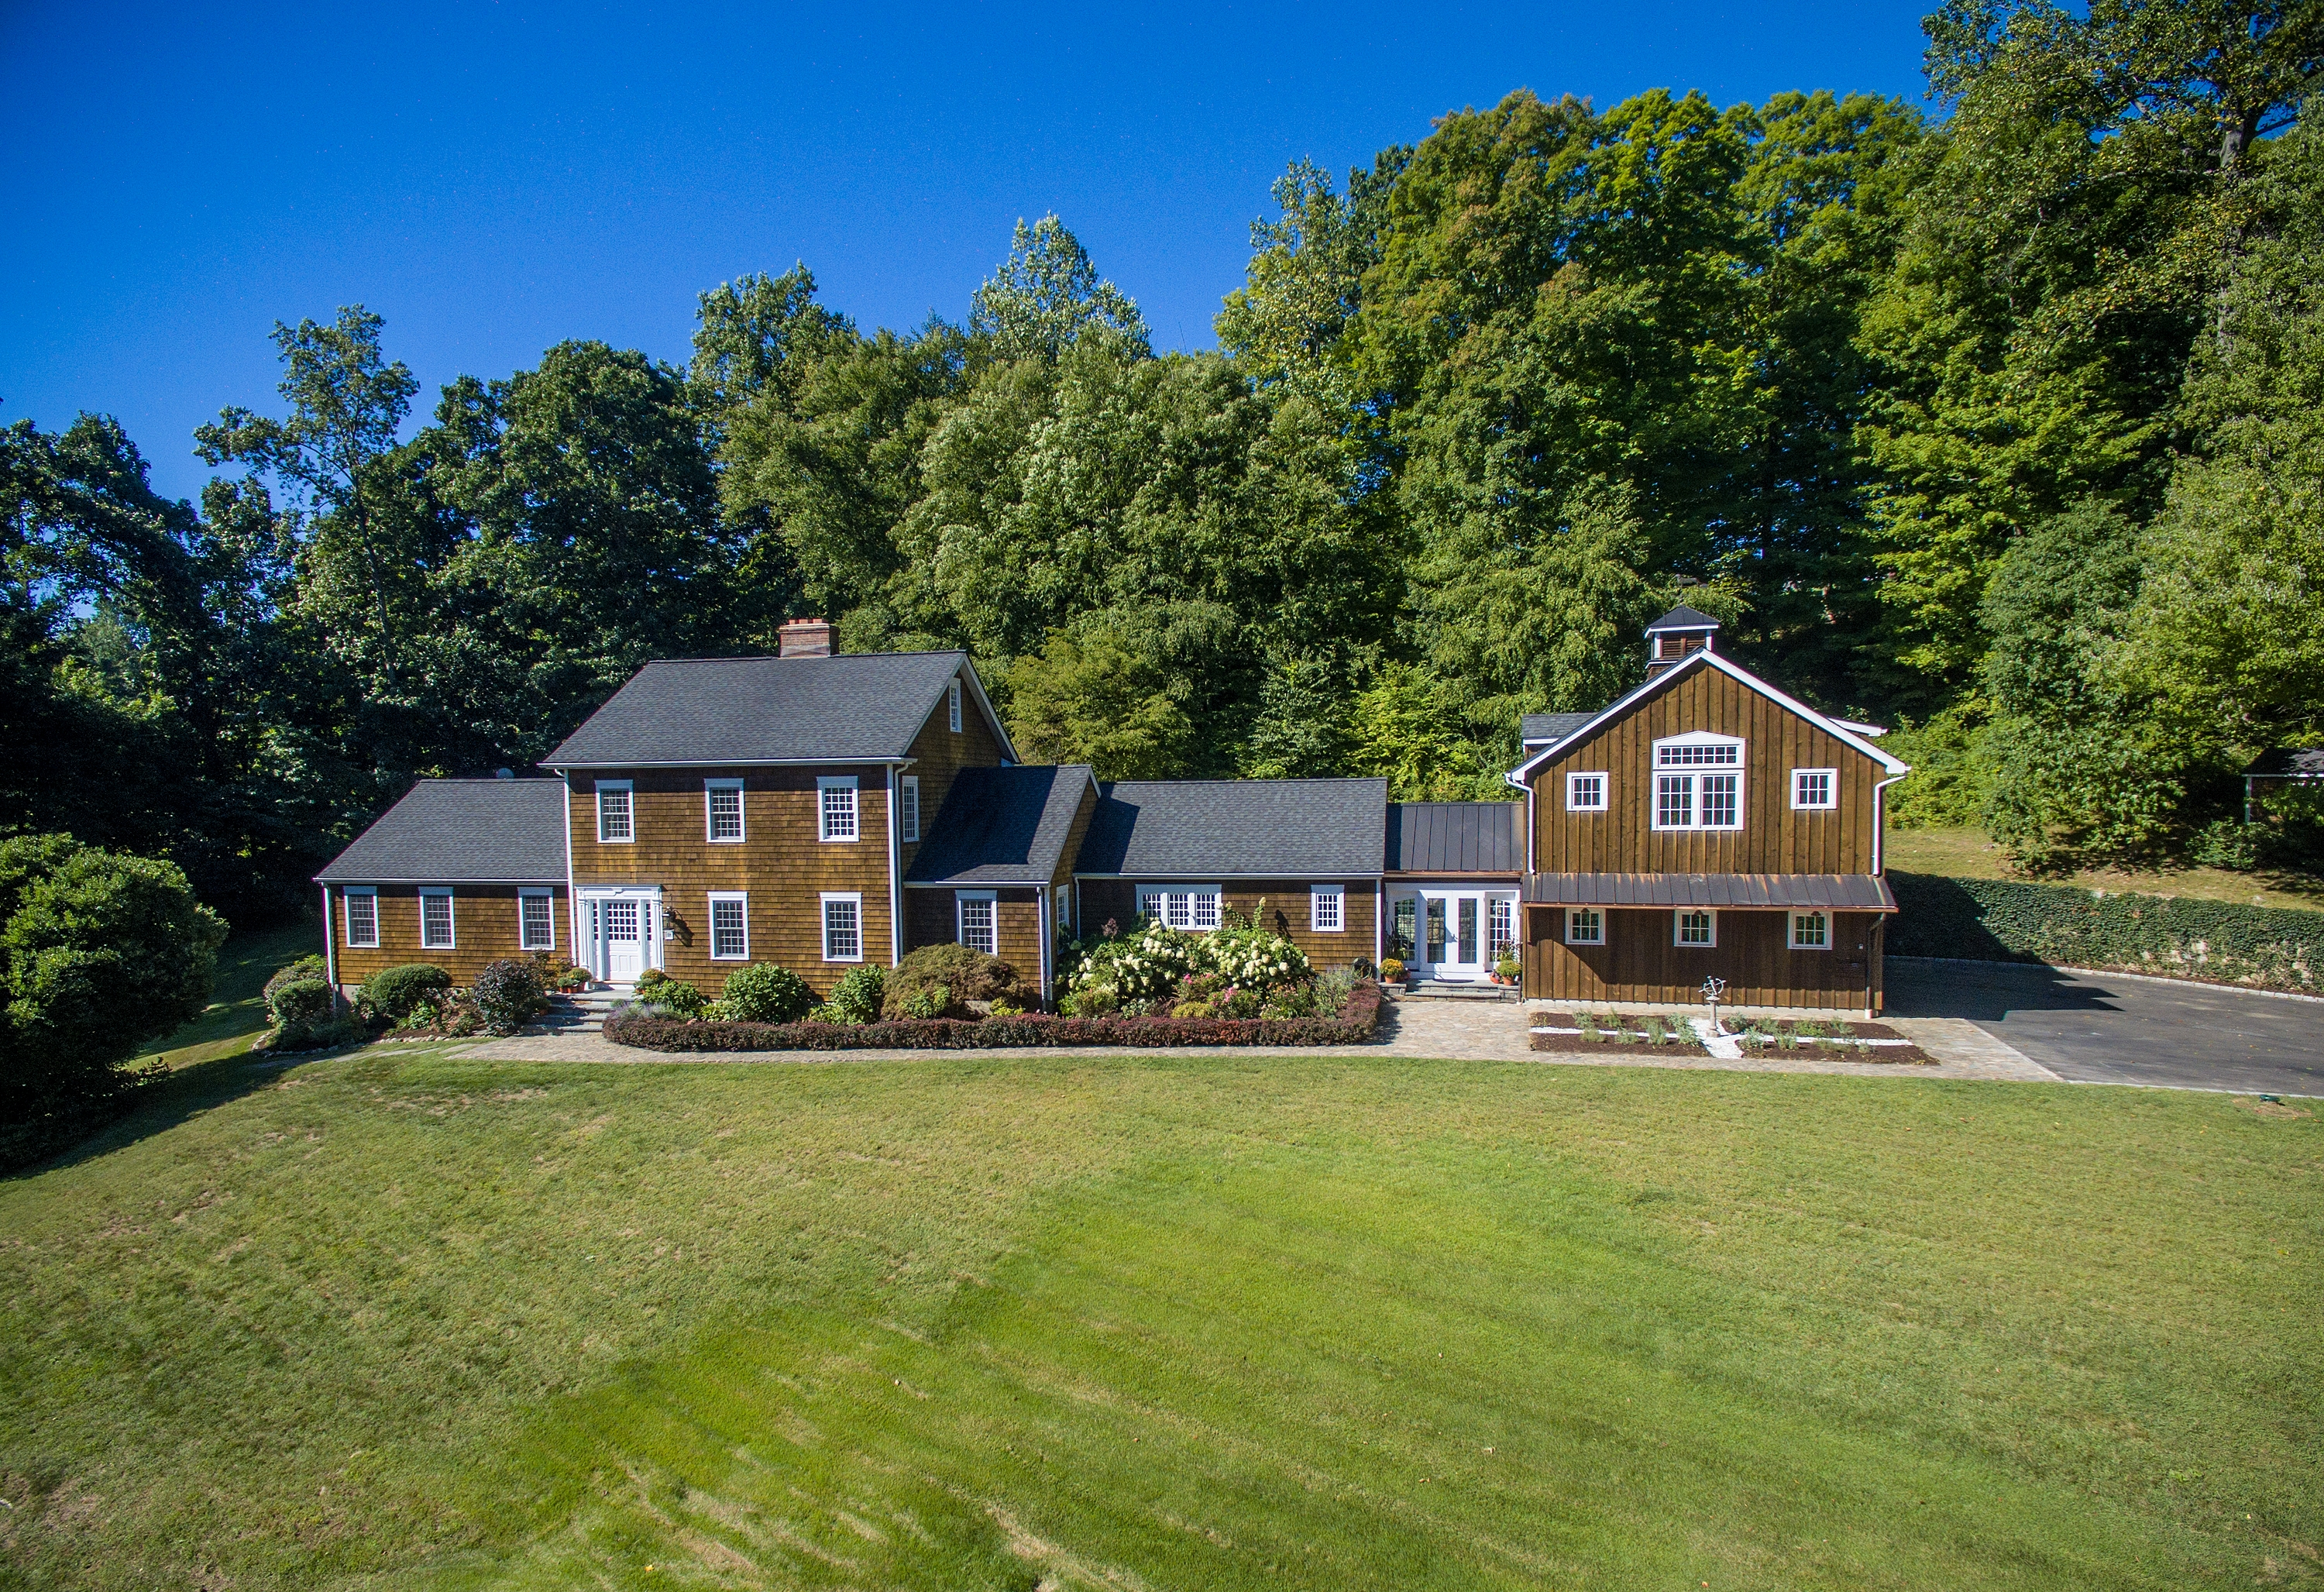 Single Family Home for Sale at 215 Cross Ridge Road New Canaan, Connecticut 06840 United States